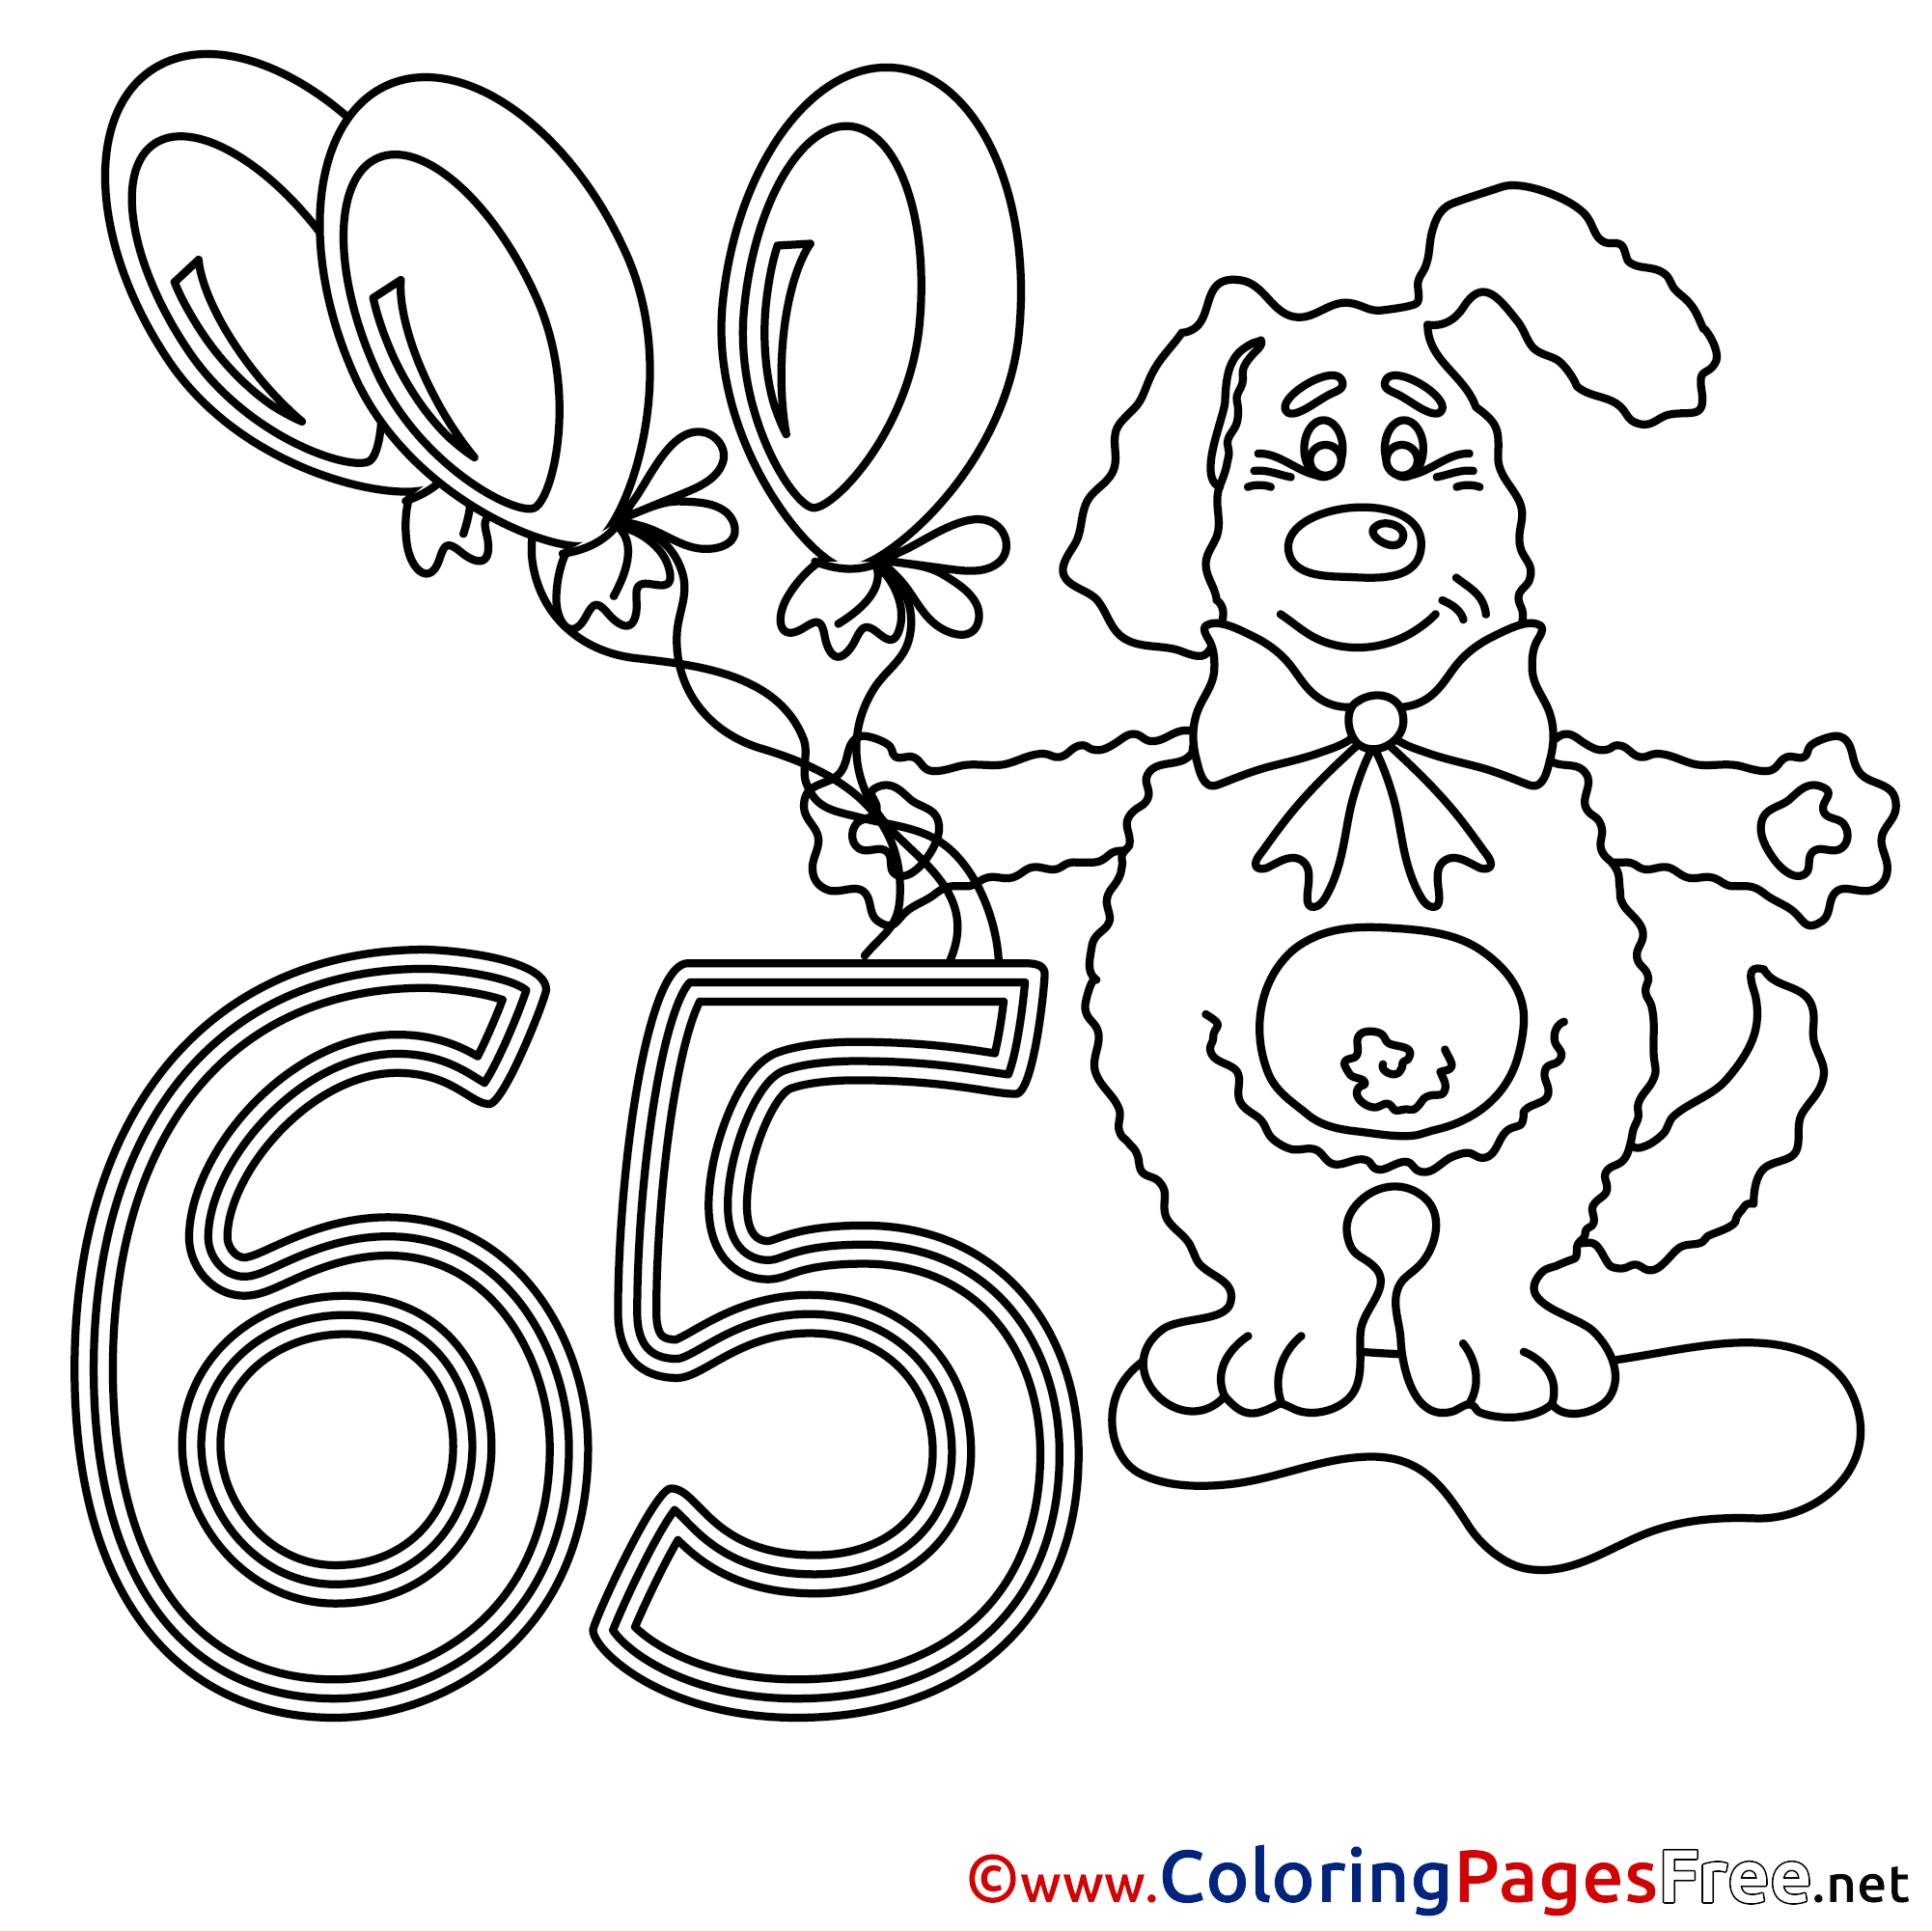 Happy Birthday Cake Coloring Pages - Coloring Home | 2001x2002